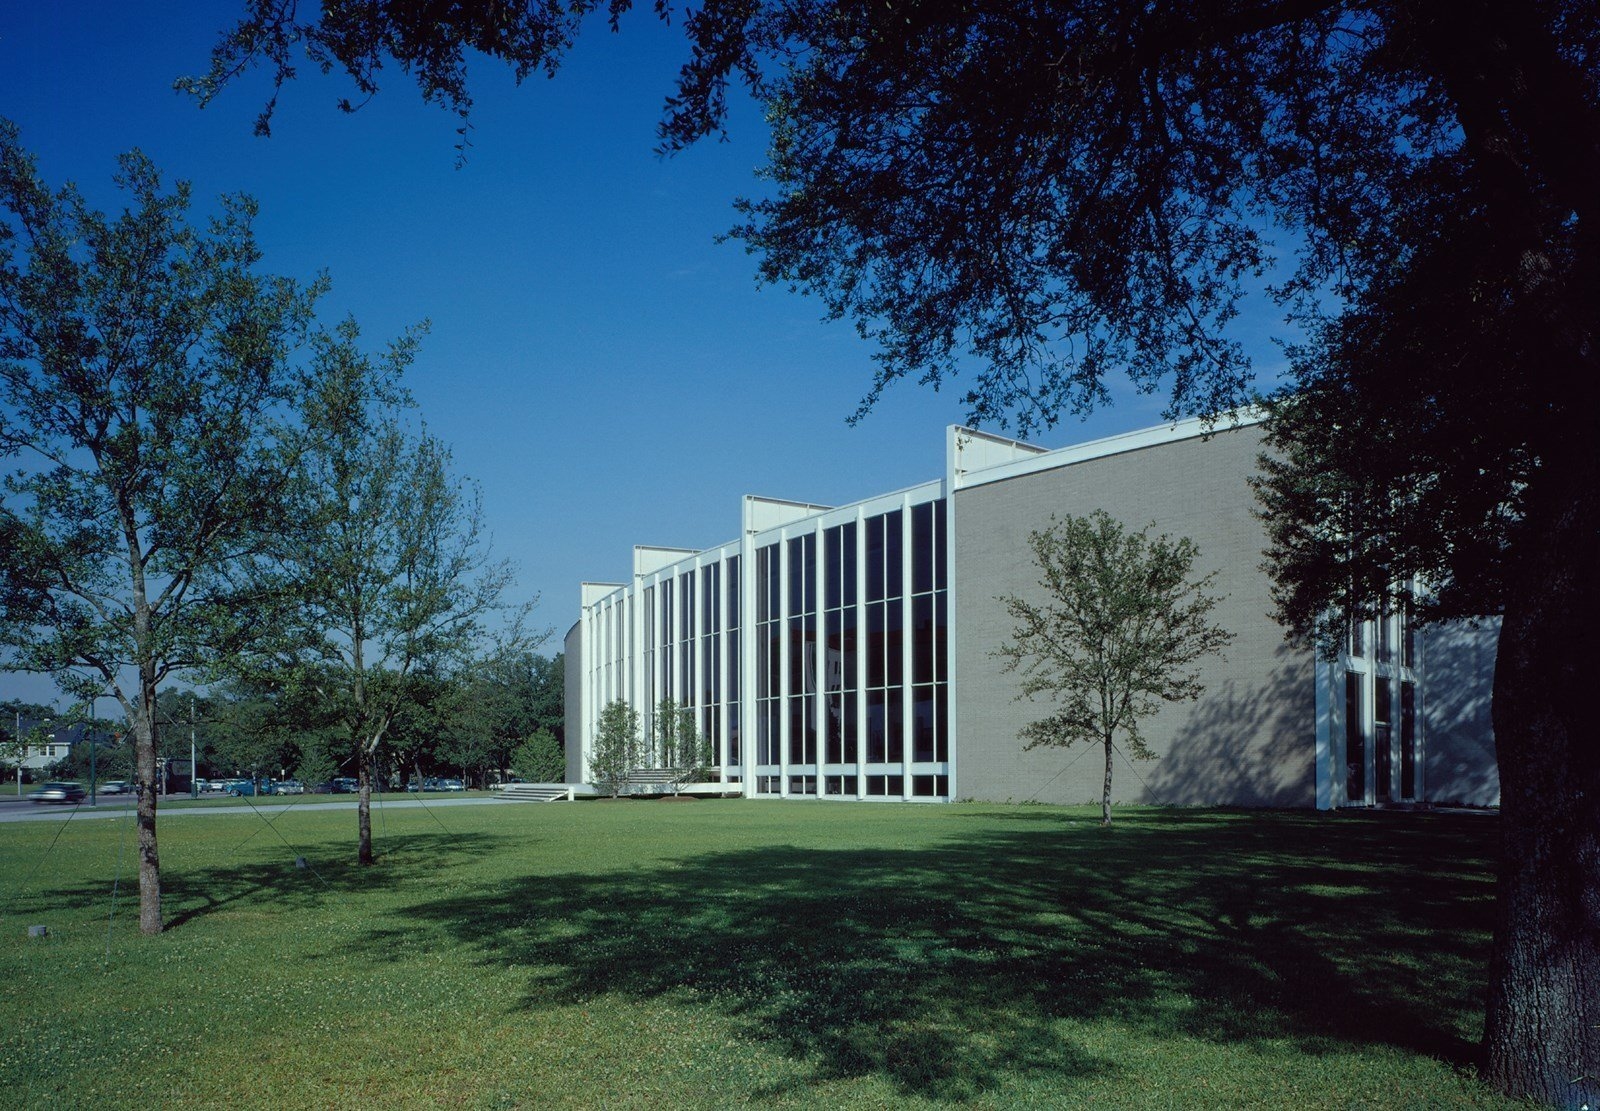 """In 1953, Nina J. Cullinan gifted a building addition to Houston's Museum of Fine Arts as a memorial for her parents. Her only stipulation was that it had to be designed by an architect of """"outstanding reputation and wide experience."""" After being selected for the commission, Mies arrived in Houston on a hot summer day and rejected the idea of a standard open museum courtyard by remarking, """"But in this climate, you cannot want an open patio.""""  Photo 10 of 11 in Less Is More: 10 Buildings by Ludwig Mies van der Rohe"""